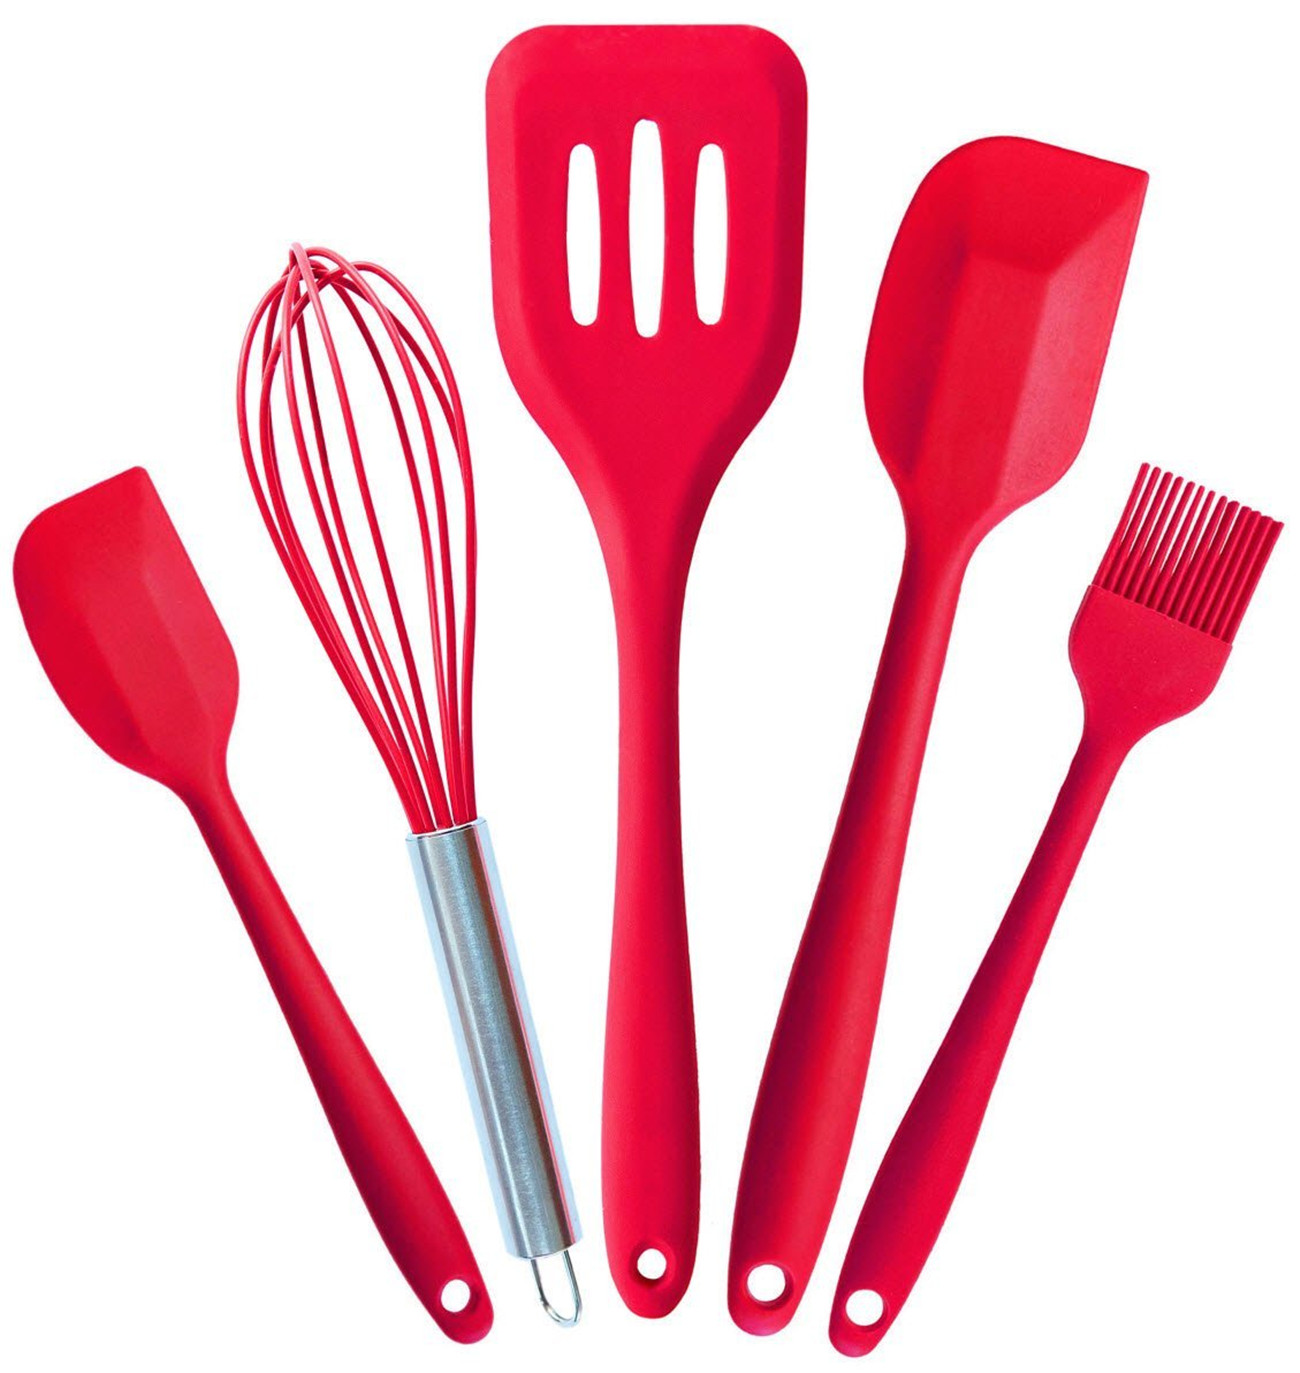 Cooking Utensils - Silicone Kitchen Set in Hygienic Solid Coating - Heat Resistant Baking Tools (5 Piece)